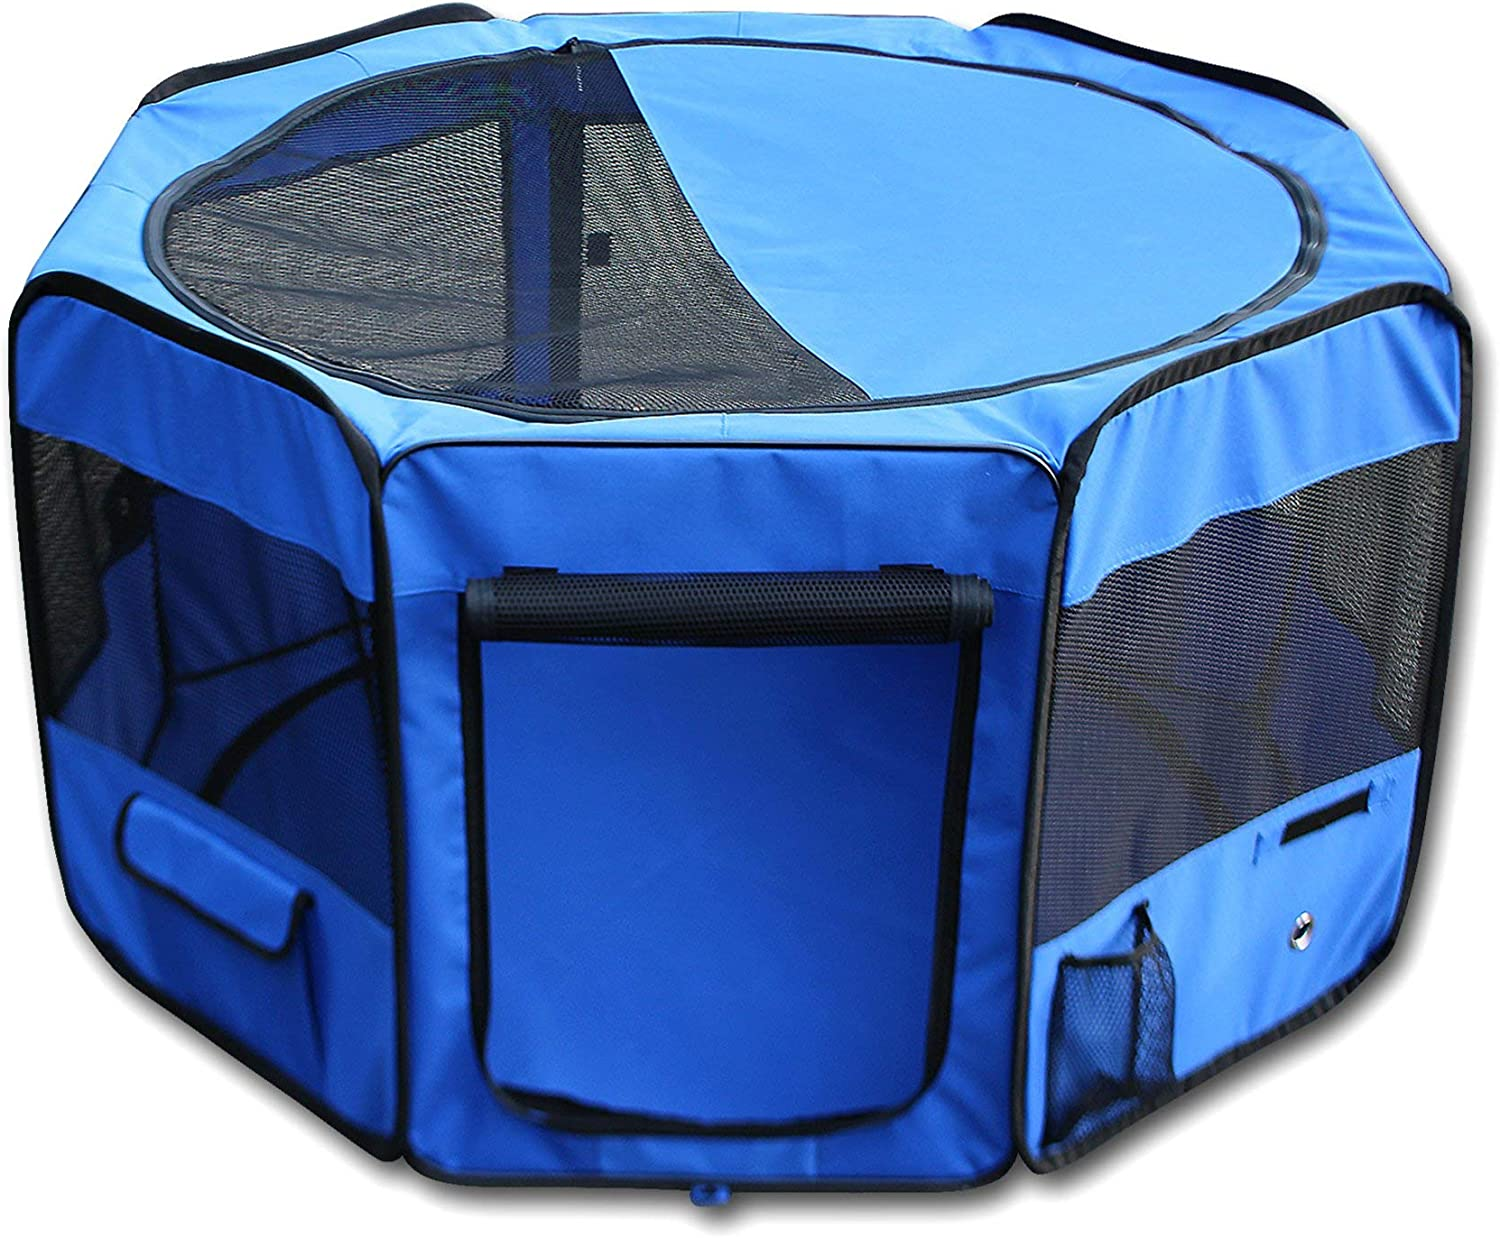 YoYo Moon 45 Pet Puppy Dog Playpen Exercise Puppy Pen Kennel 600d Oxford Cloth Blue